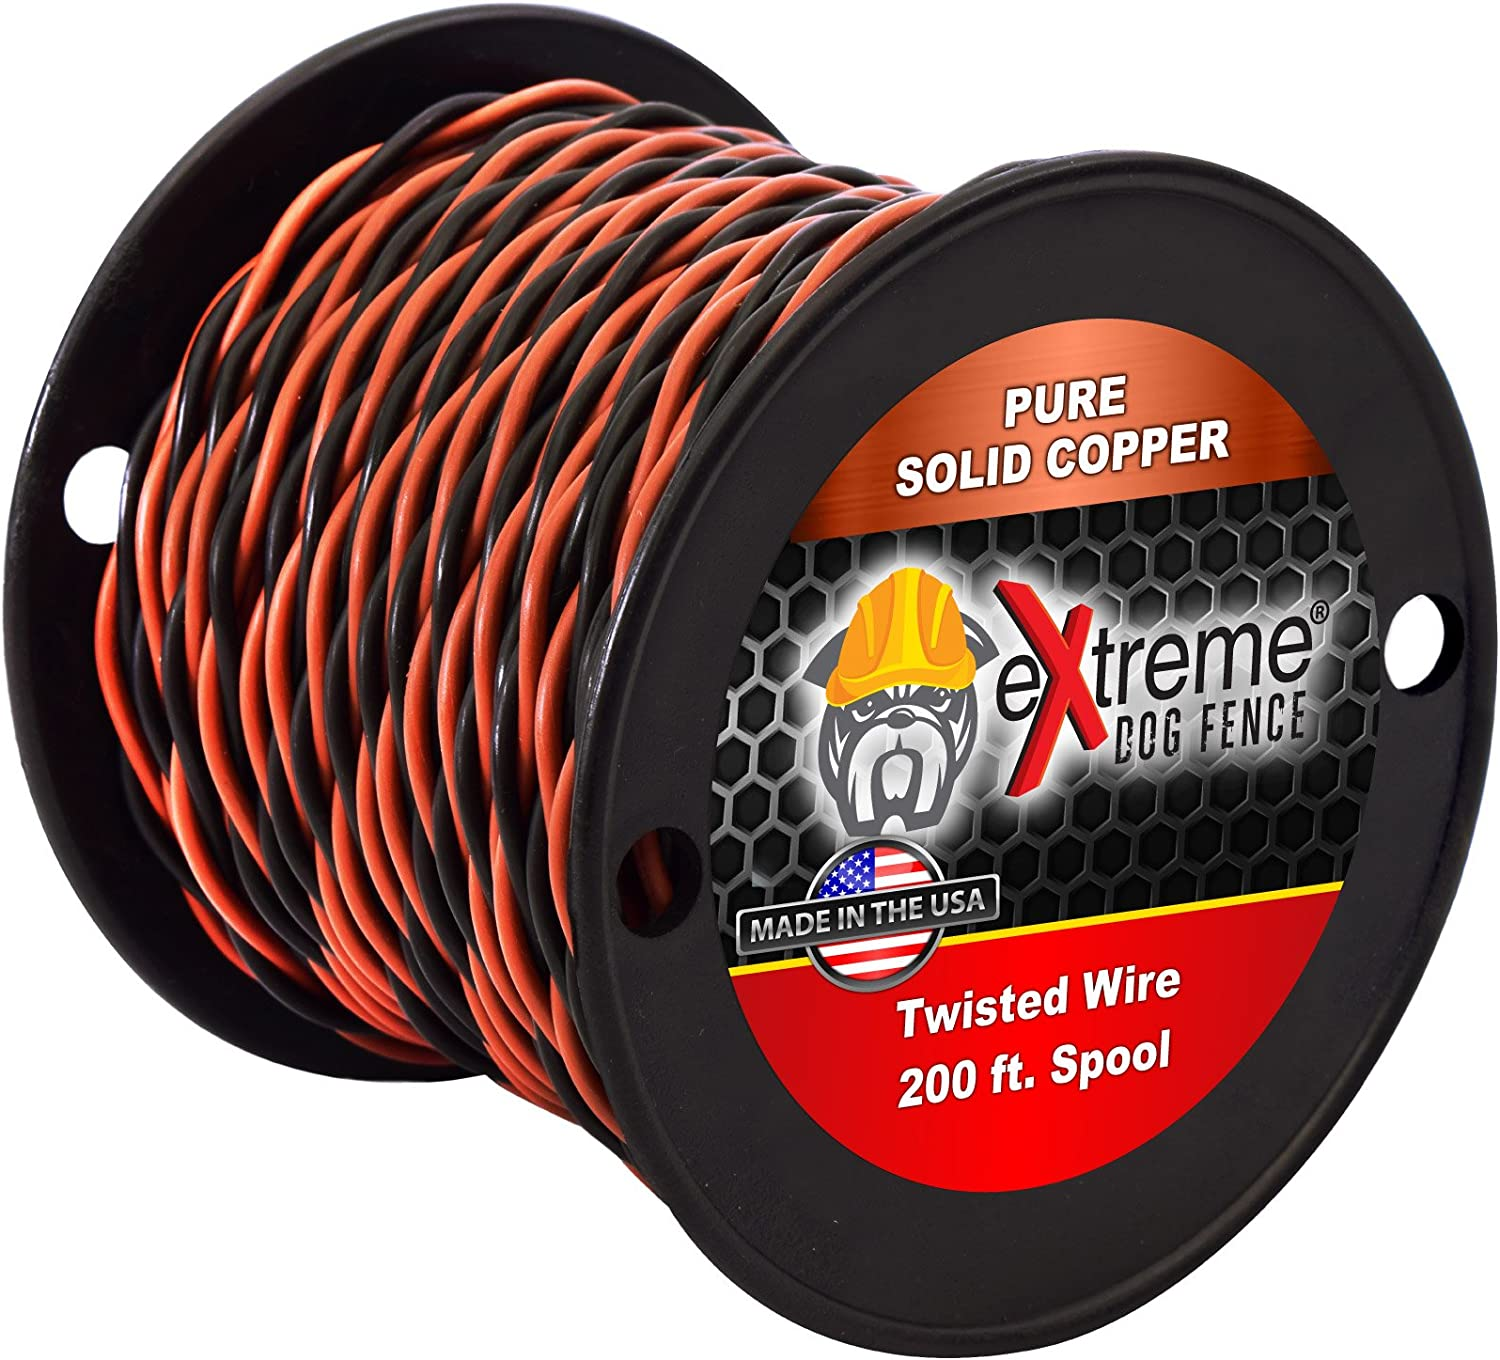 14 Gauge Solid Core Heavy Duty Professional Grade Twisted Dog Fence Wire - Compatible with All Brands 81UAayqnvOL